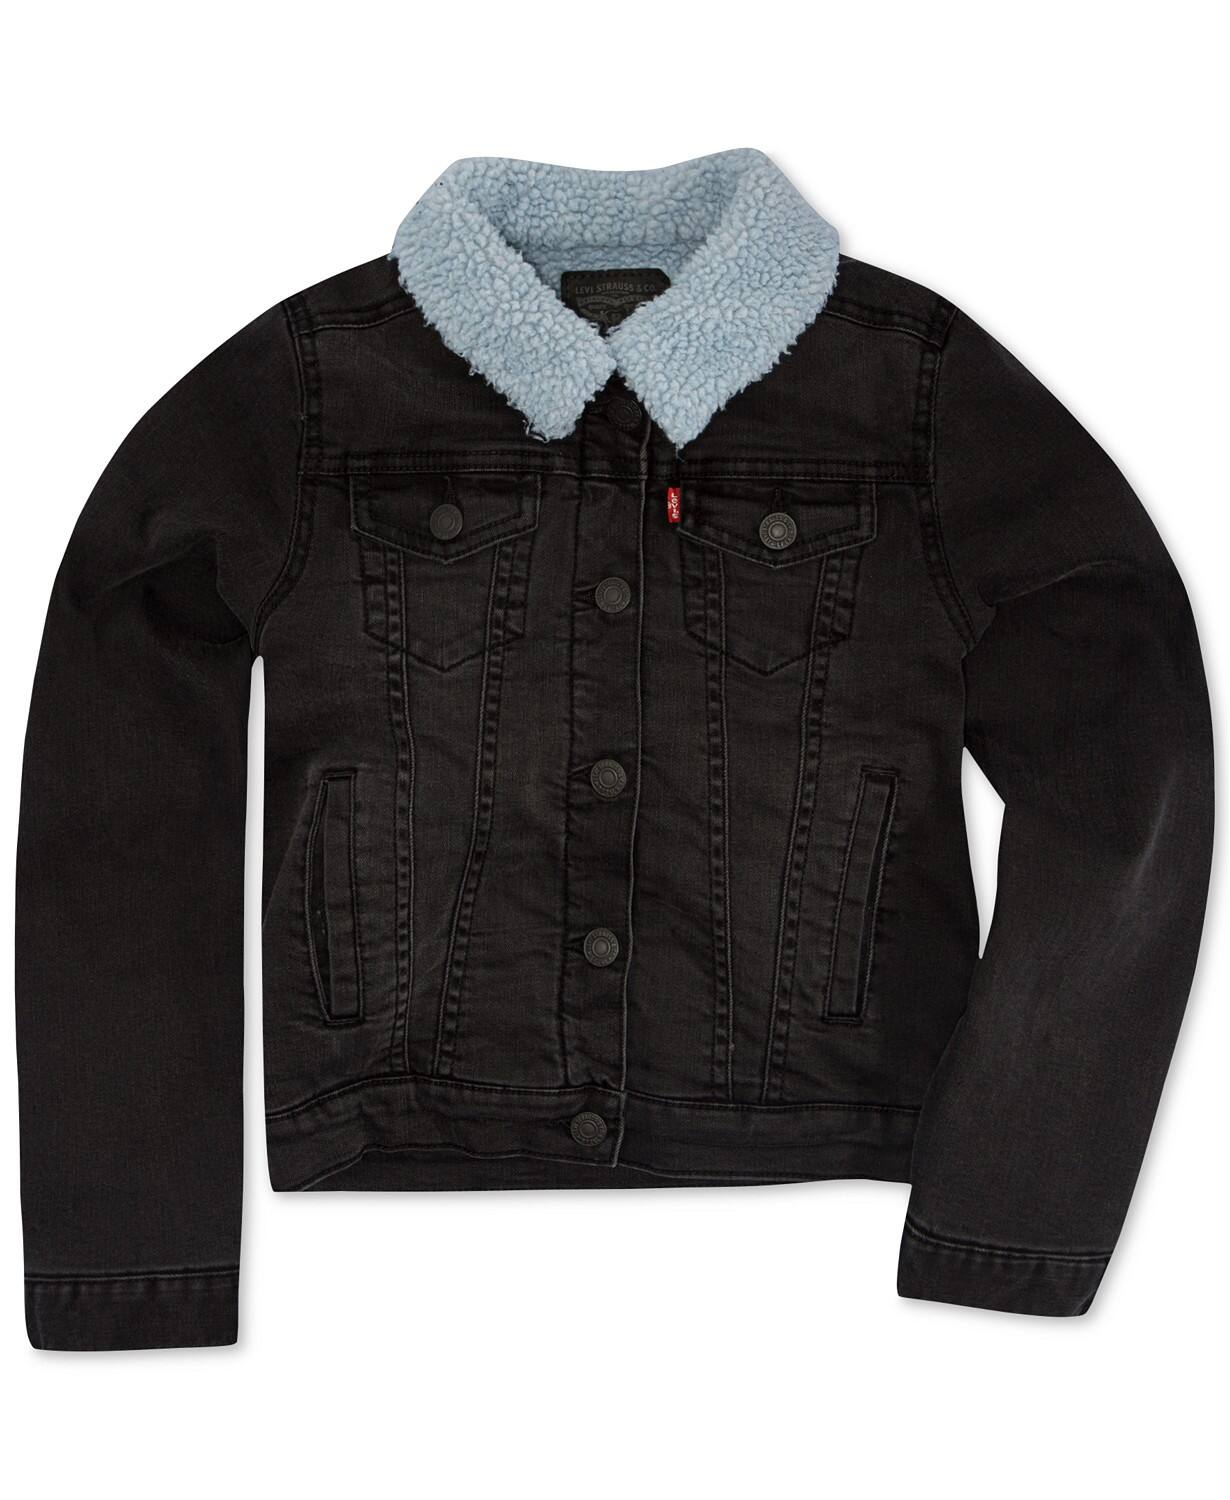 6f957d57 Girls Jackets: Levi's Faux Sherpa Denim Jacket (sizes 2T, 3T, 4,5,6)  $13.60, Ideology Active Jacket $10 & More + free store pickup at Macys or  FS on $75+